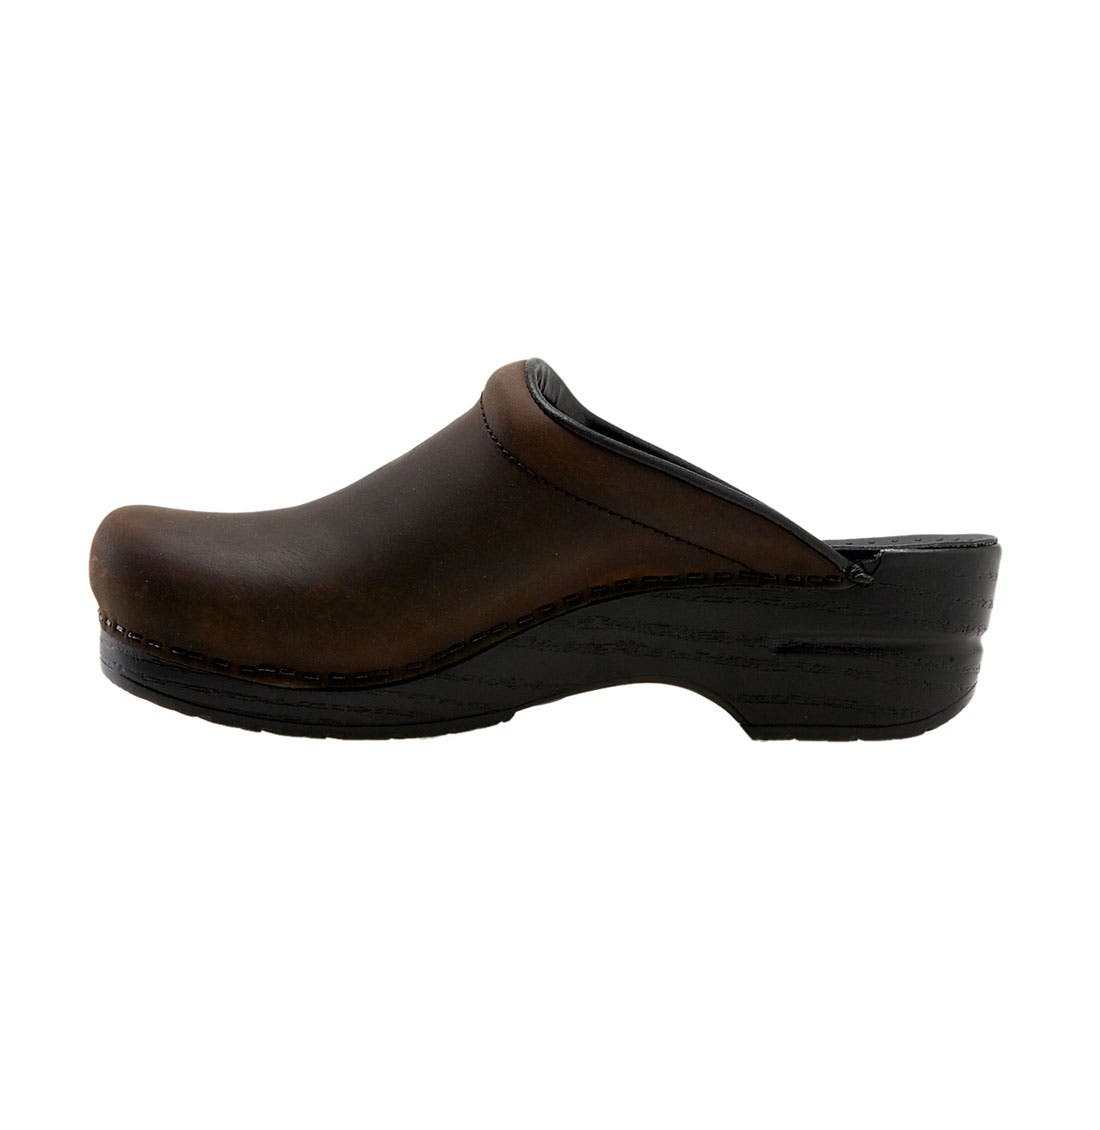 'Sonja' Oiled Leather Clog,                             Alternate thumbnail 4, color,                             ANTIQUE BROWN OILED